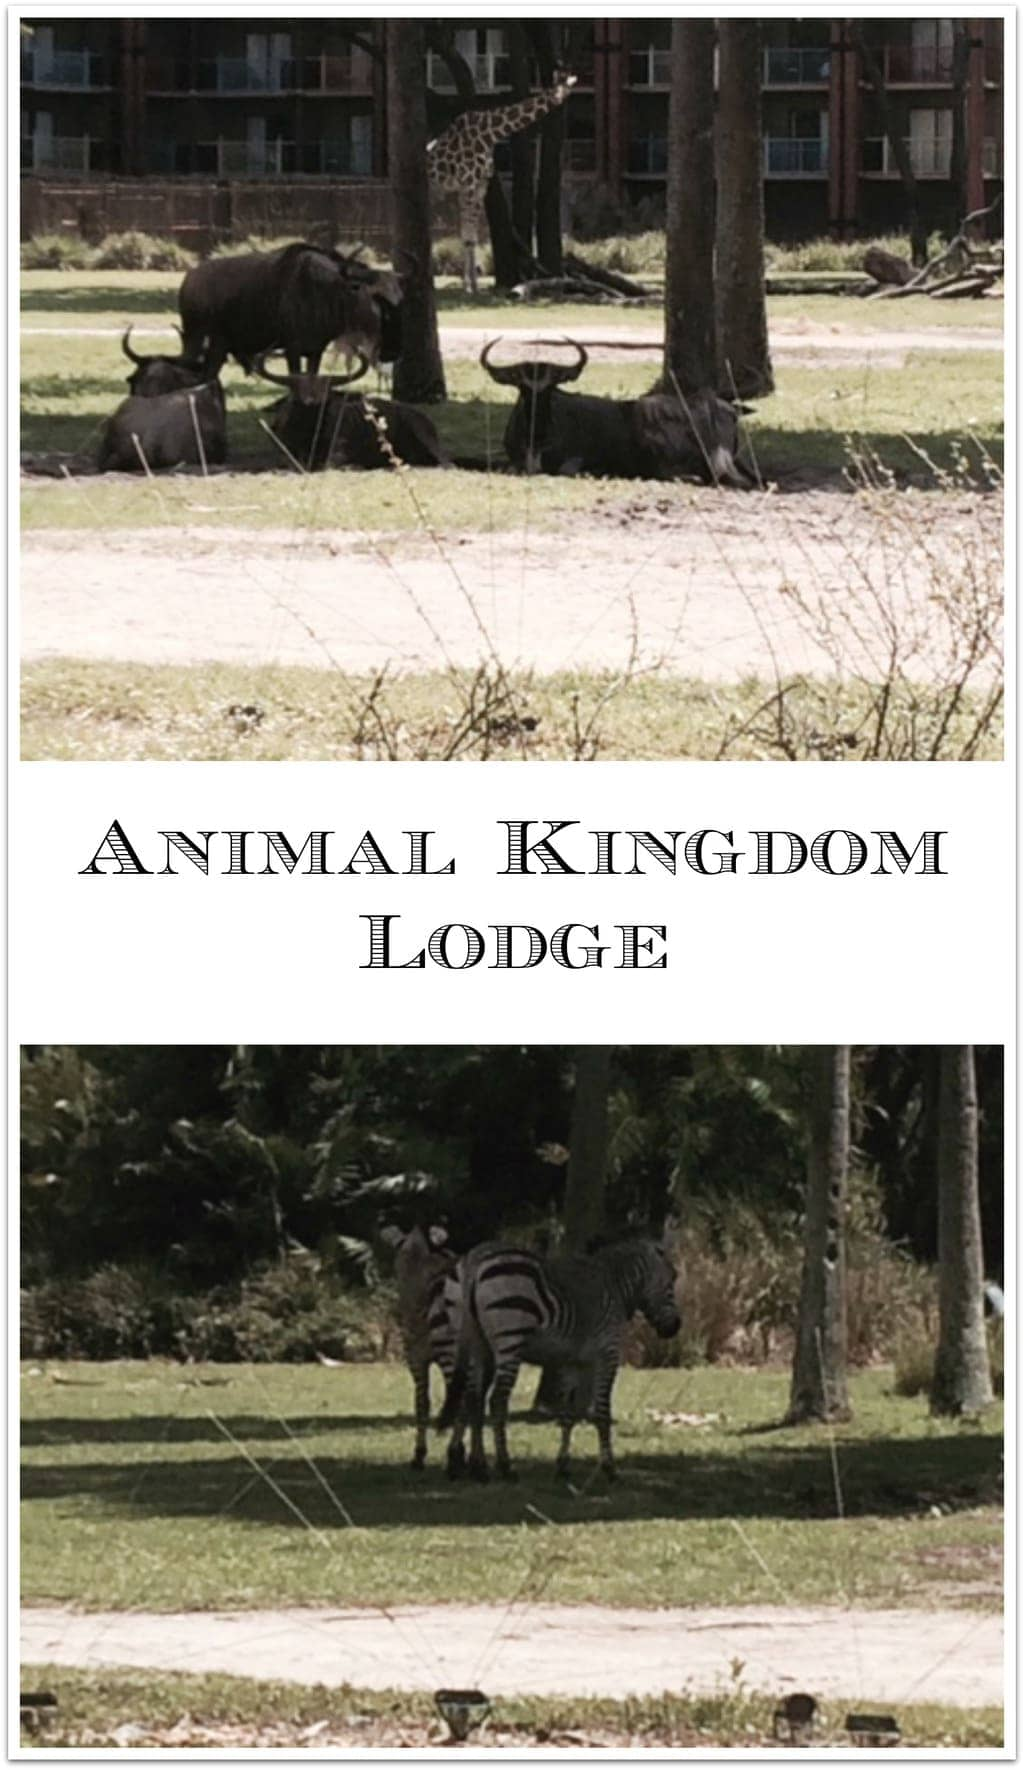 If you are planning to travel to Disney World, the Animal Kingdom Lodge is a must see! I'd recommend lunch or dinner as the food is fabulous!